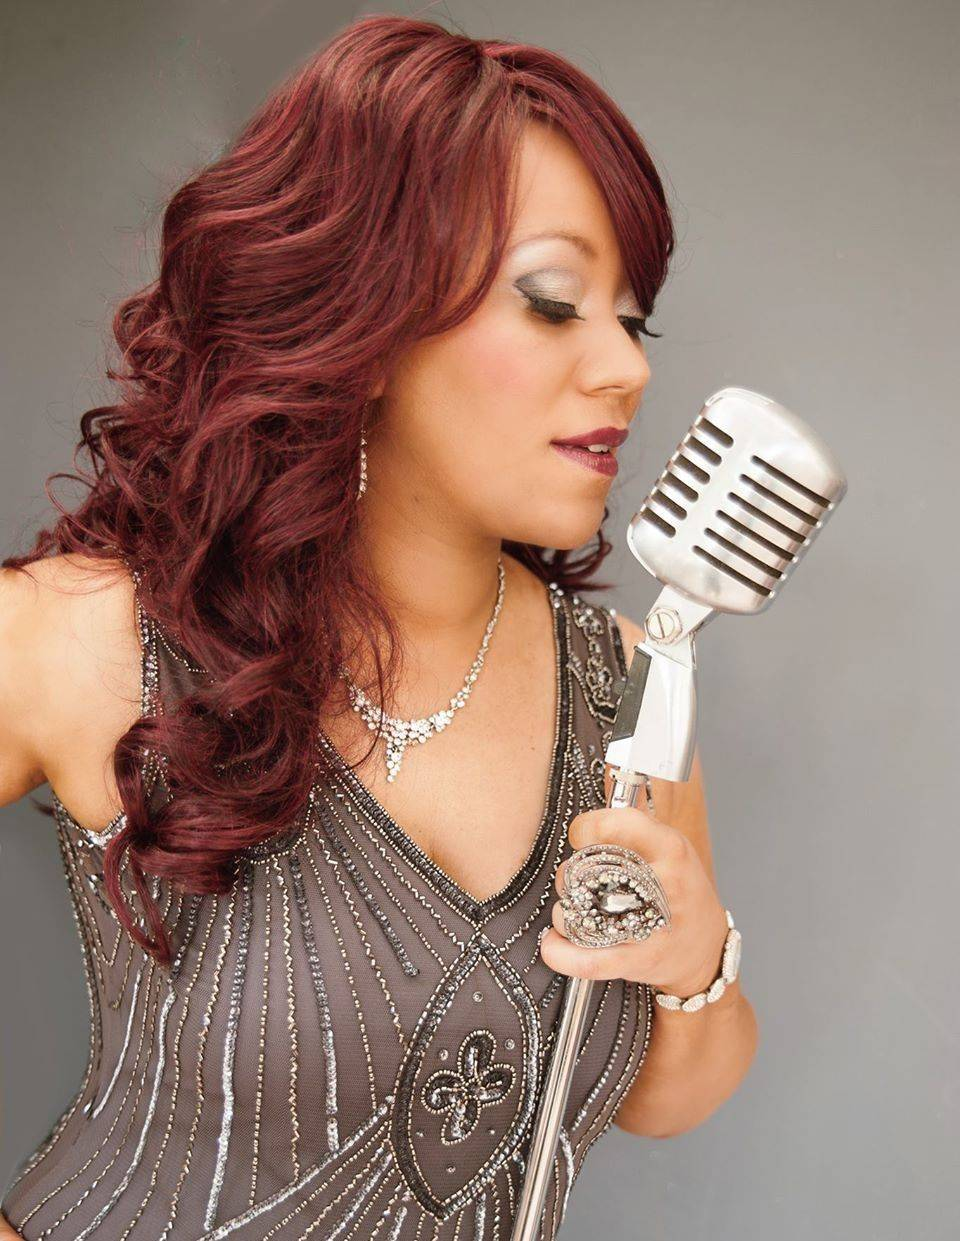 Destiny Michelle - Award Winning International Female Vocalist performs Jazz